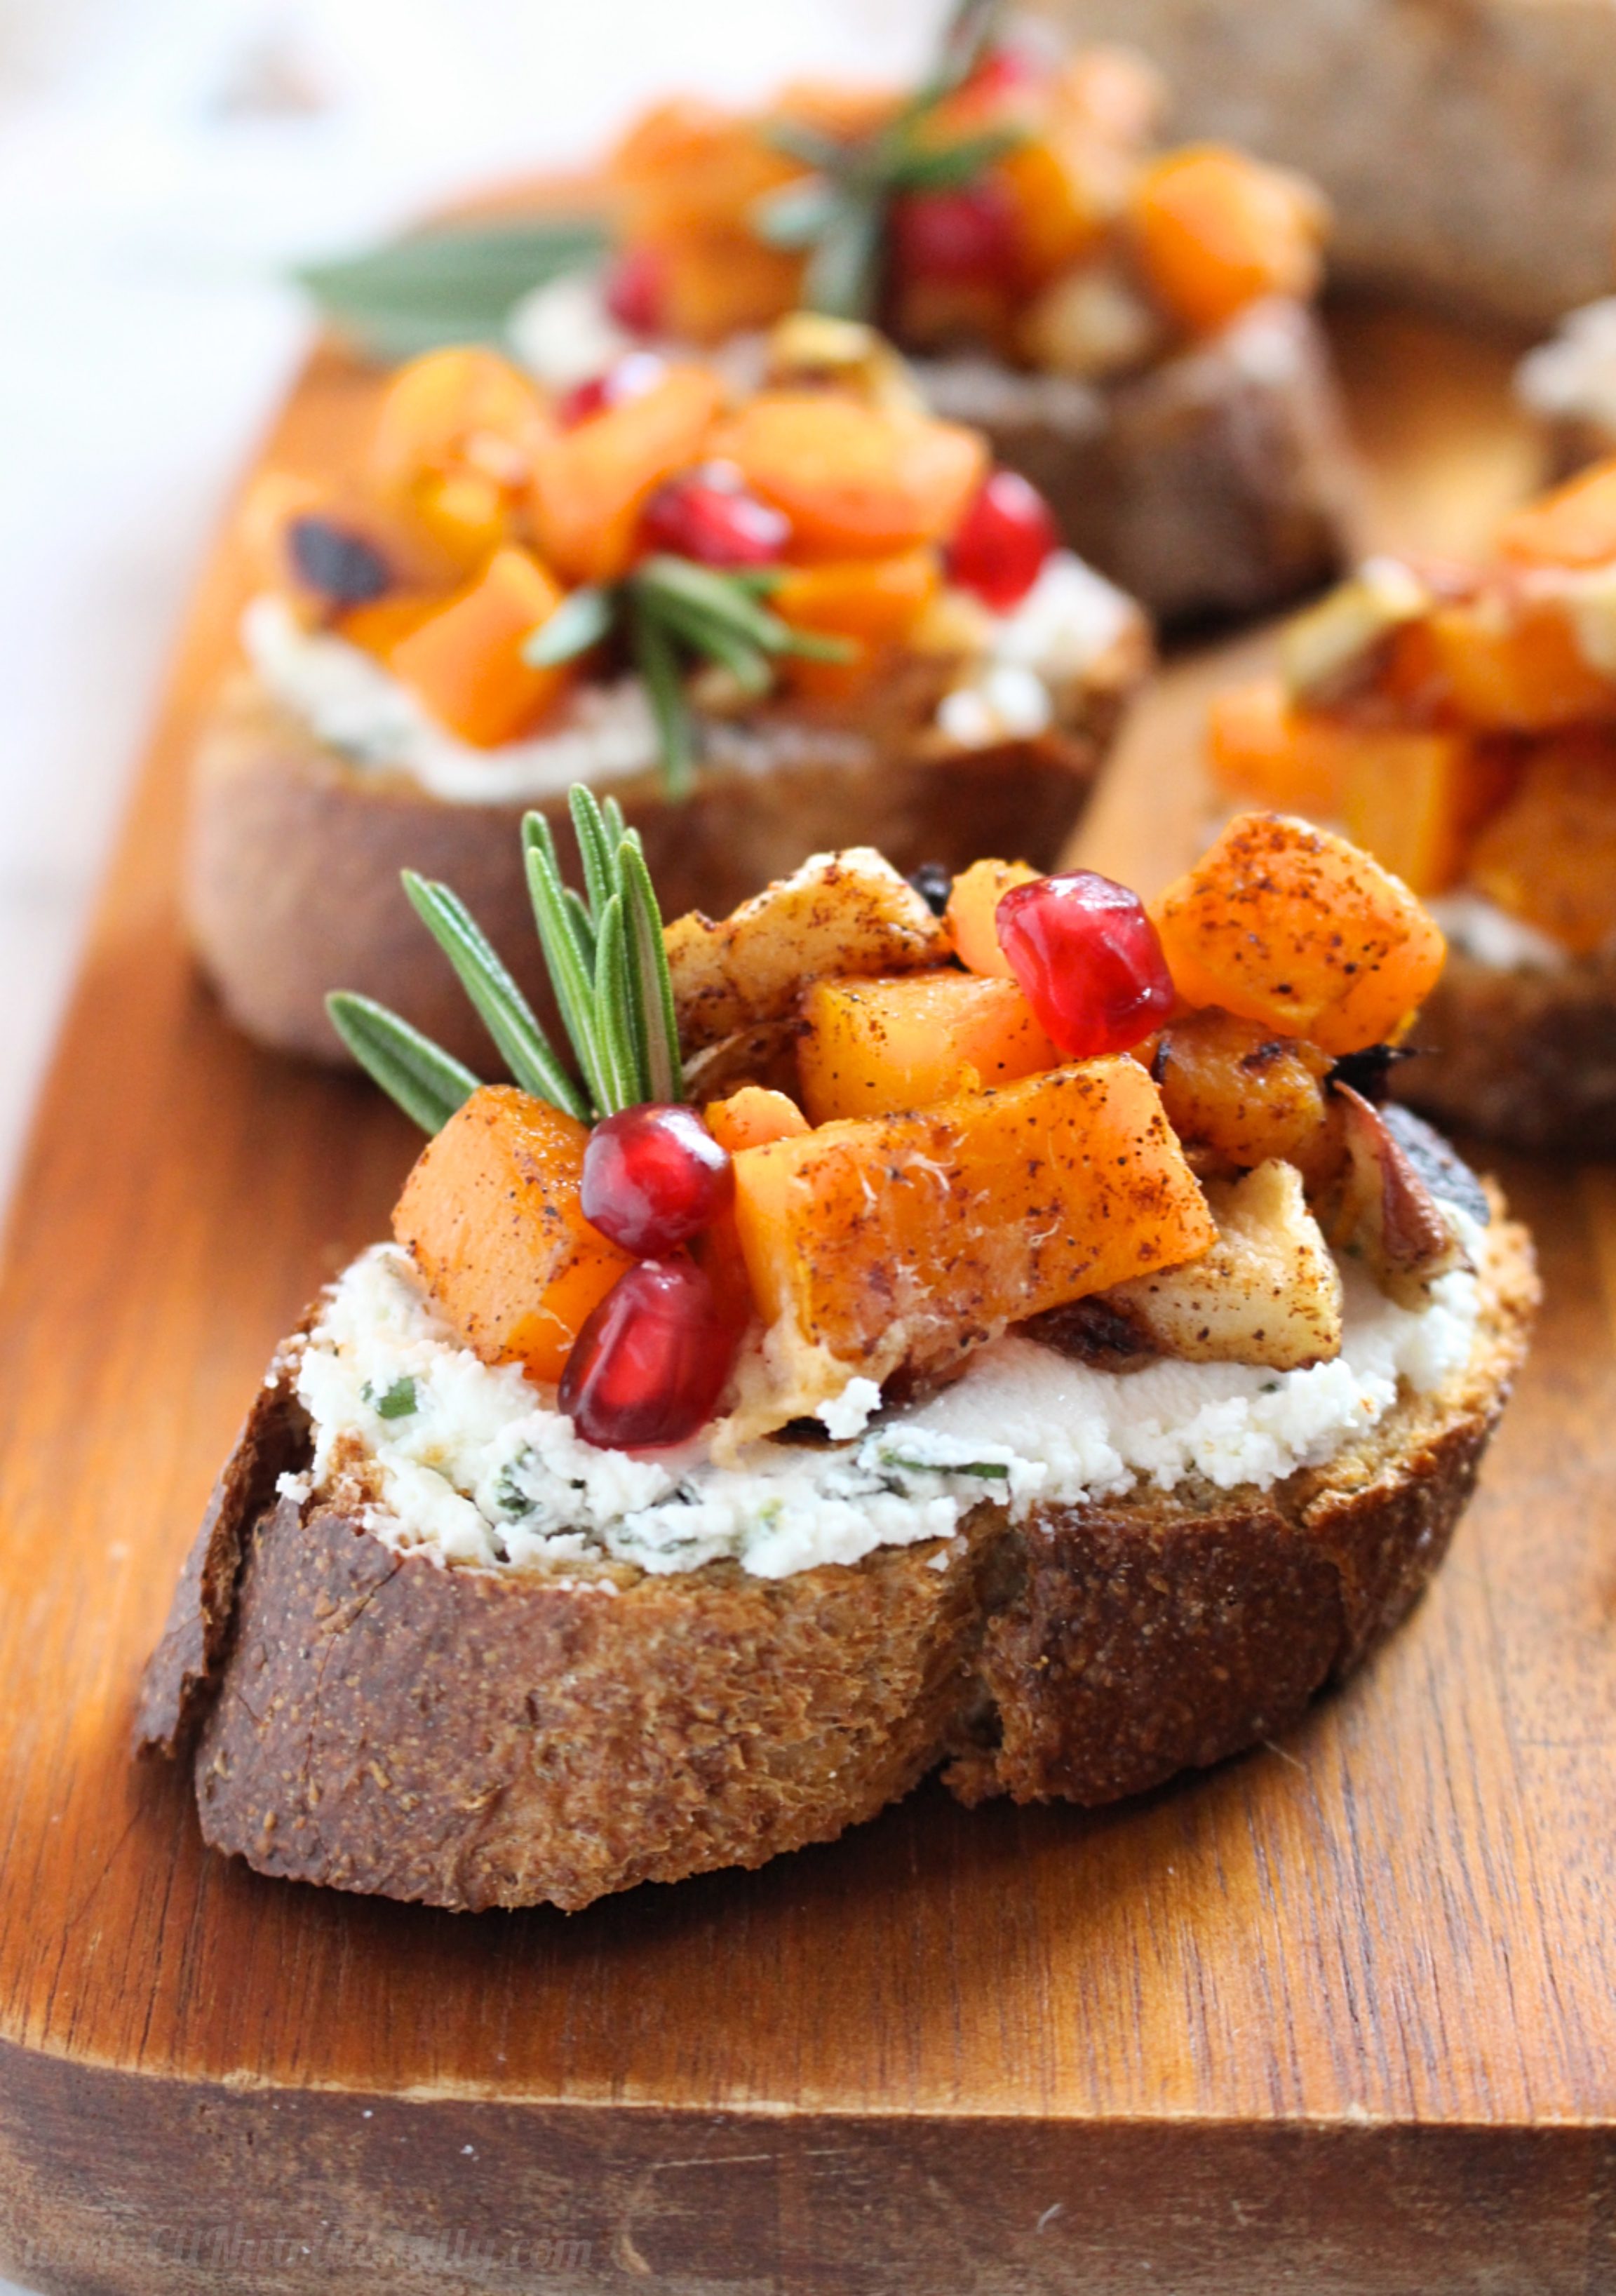 [AD] Roasted Butternut Squash and Herbed Goat Cheese Crostini | C it Nutritionally These Roasted Butternut Squash and Pomegranate Crostini are the perfect fall appetizer to help you entertain for the holidays! Enjoy perfectly caramelized butternut squash and apples, creamy goat cheese with fresh herbs and a sprinkle of pomegranate arils. Vegetarian, Gluten Free option, Egg Free, Soy Free, Nut Free